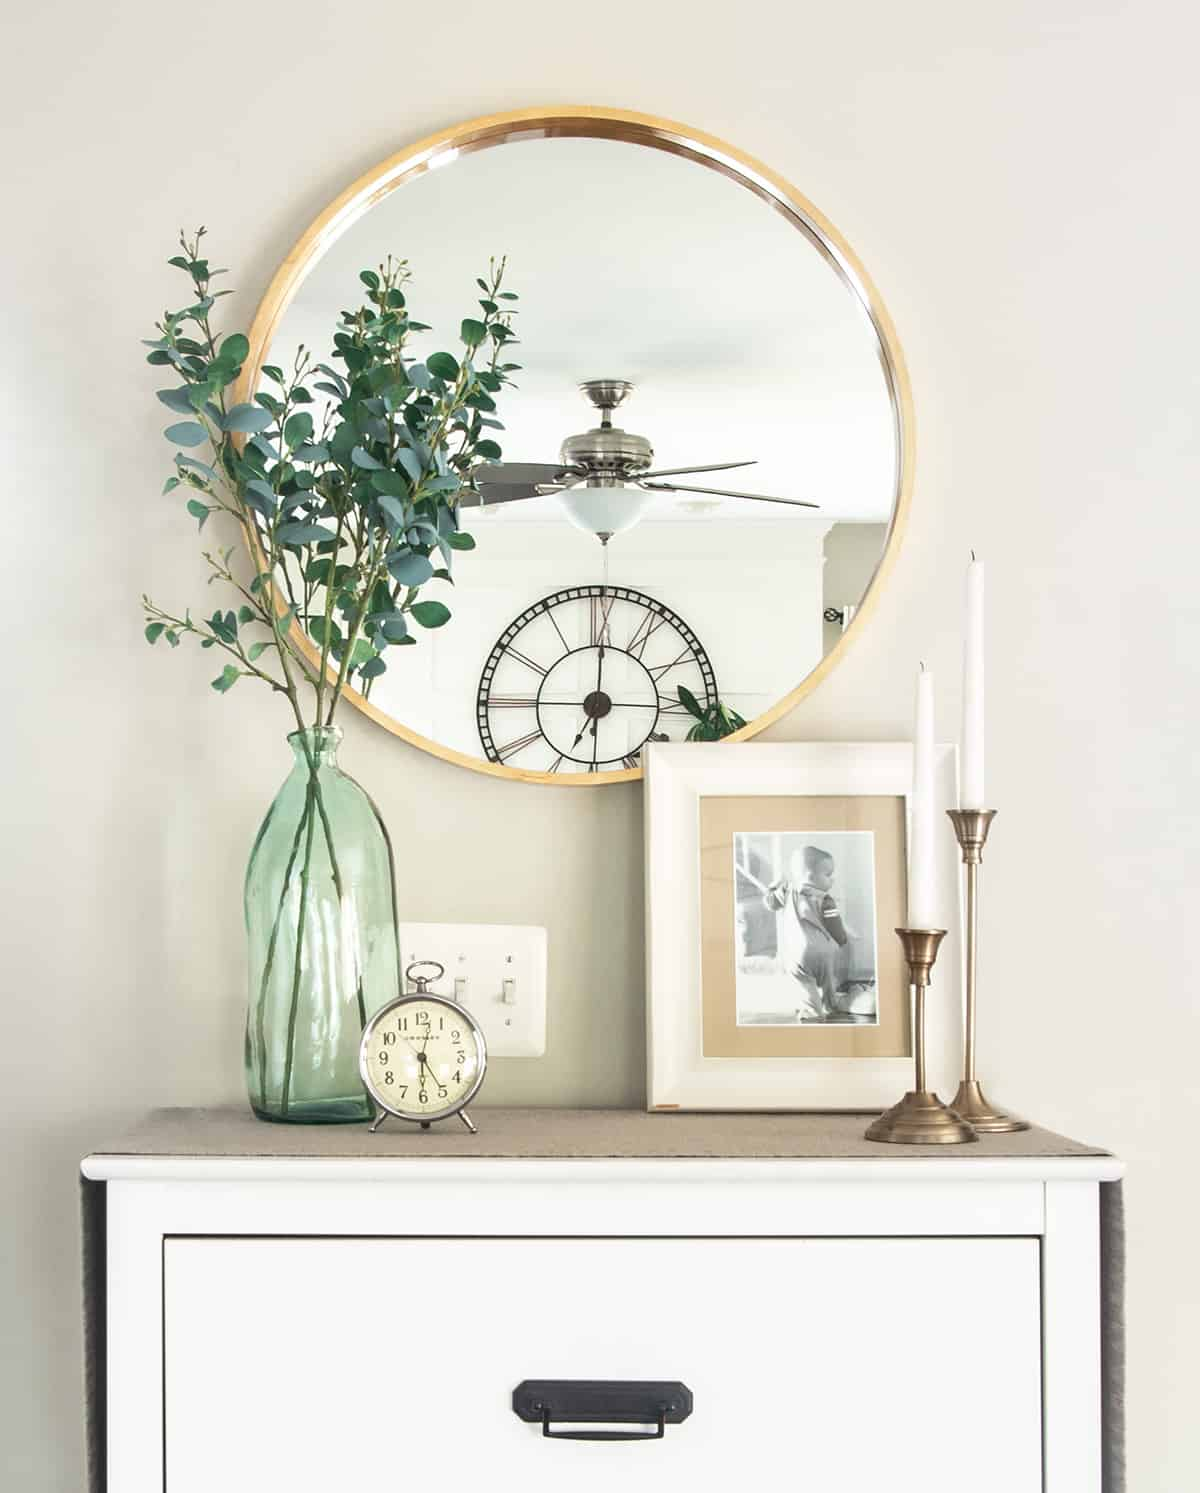 Small dresser decor items including a round mirror, vase, picture frame and candles.